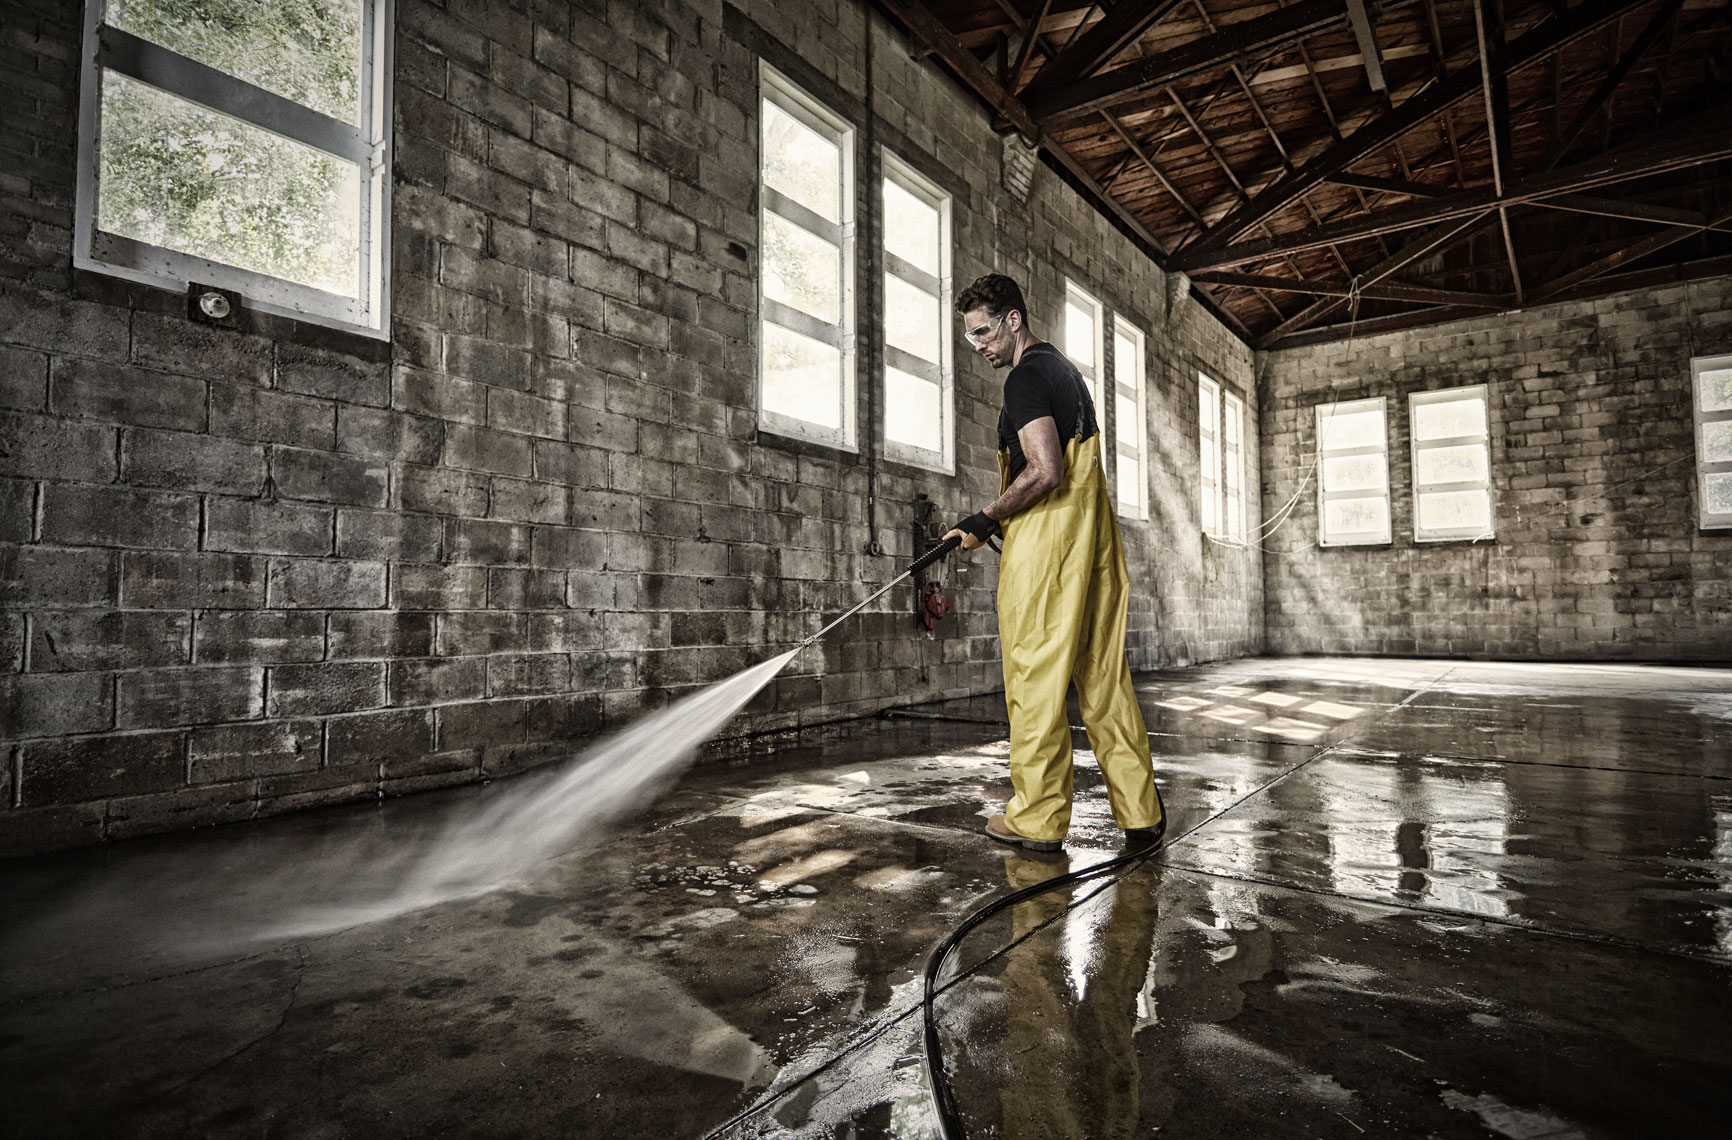 Man power washing/Veloci/brick interior/lifestyle photo